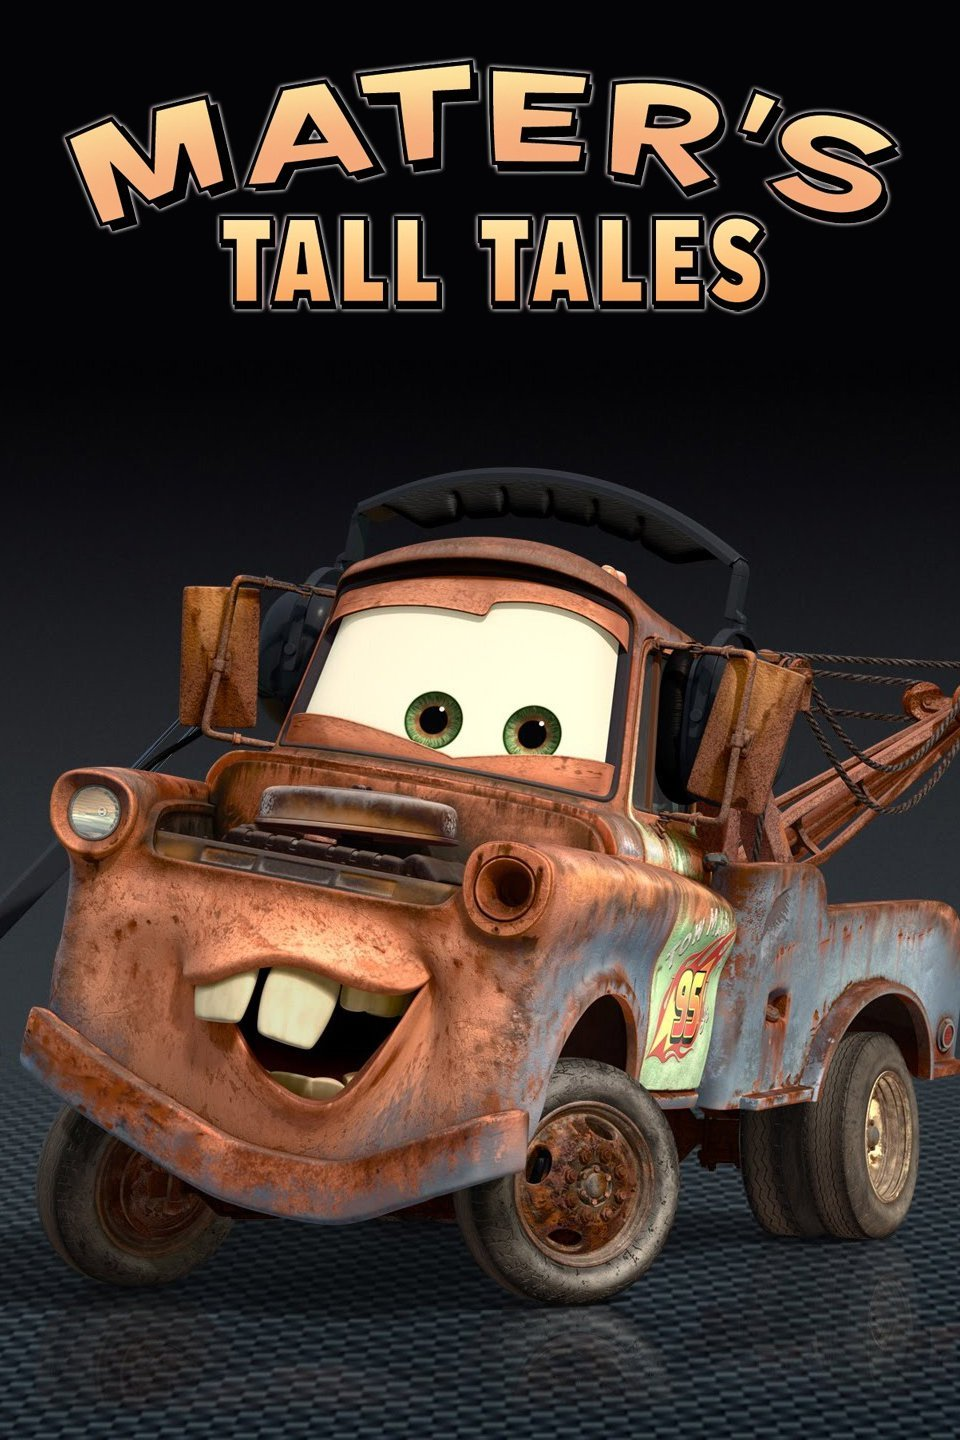 Cars Toons: Mater's Tall Tales-Mater's Tall Tales